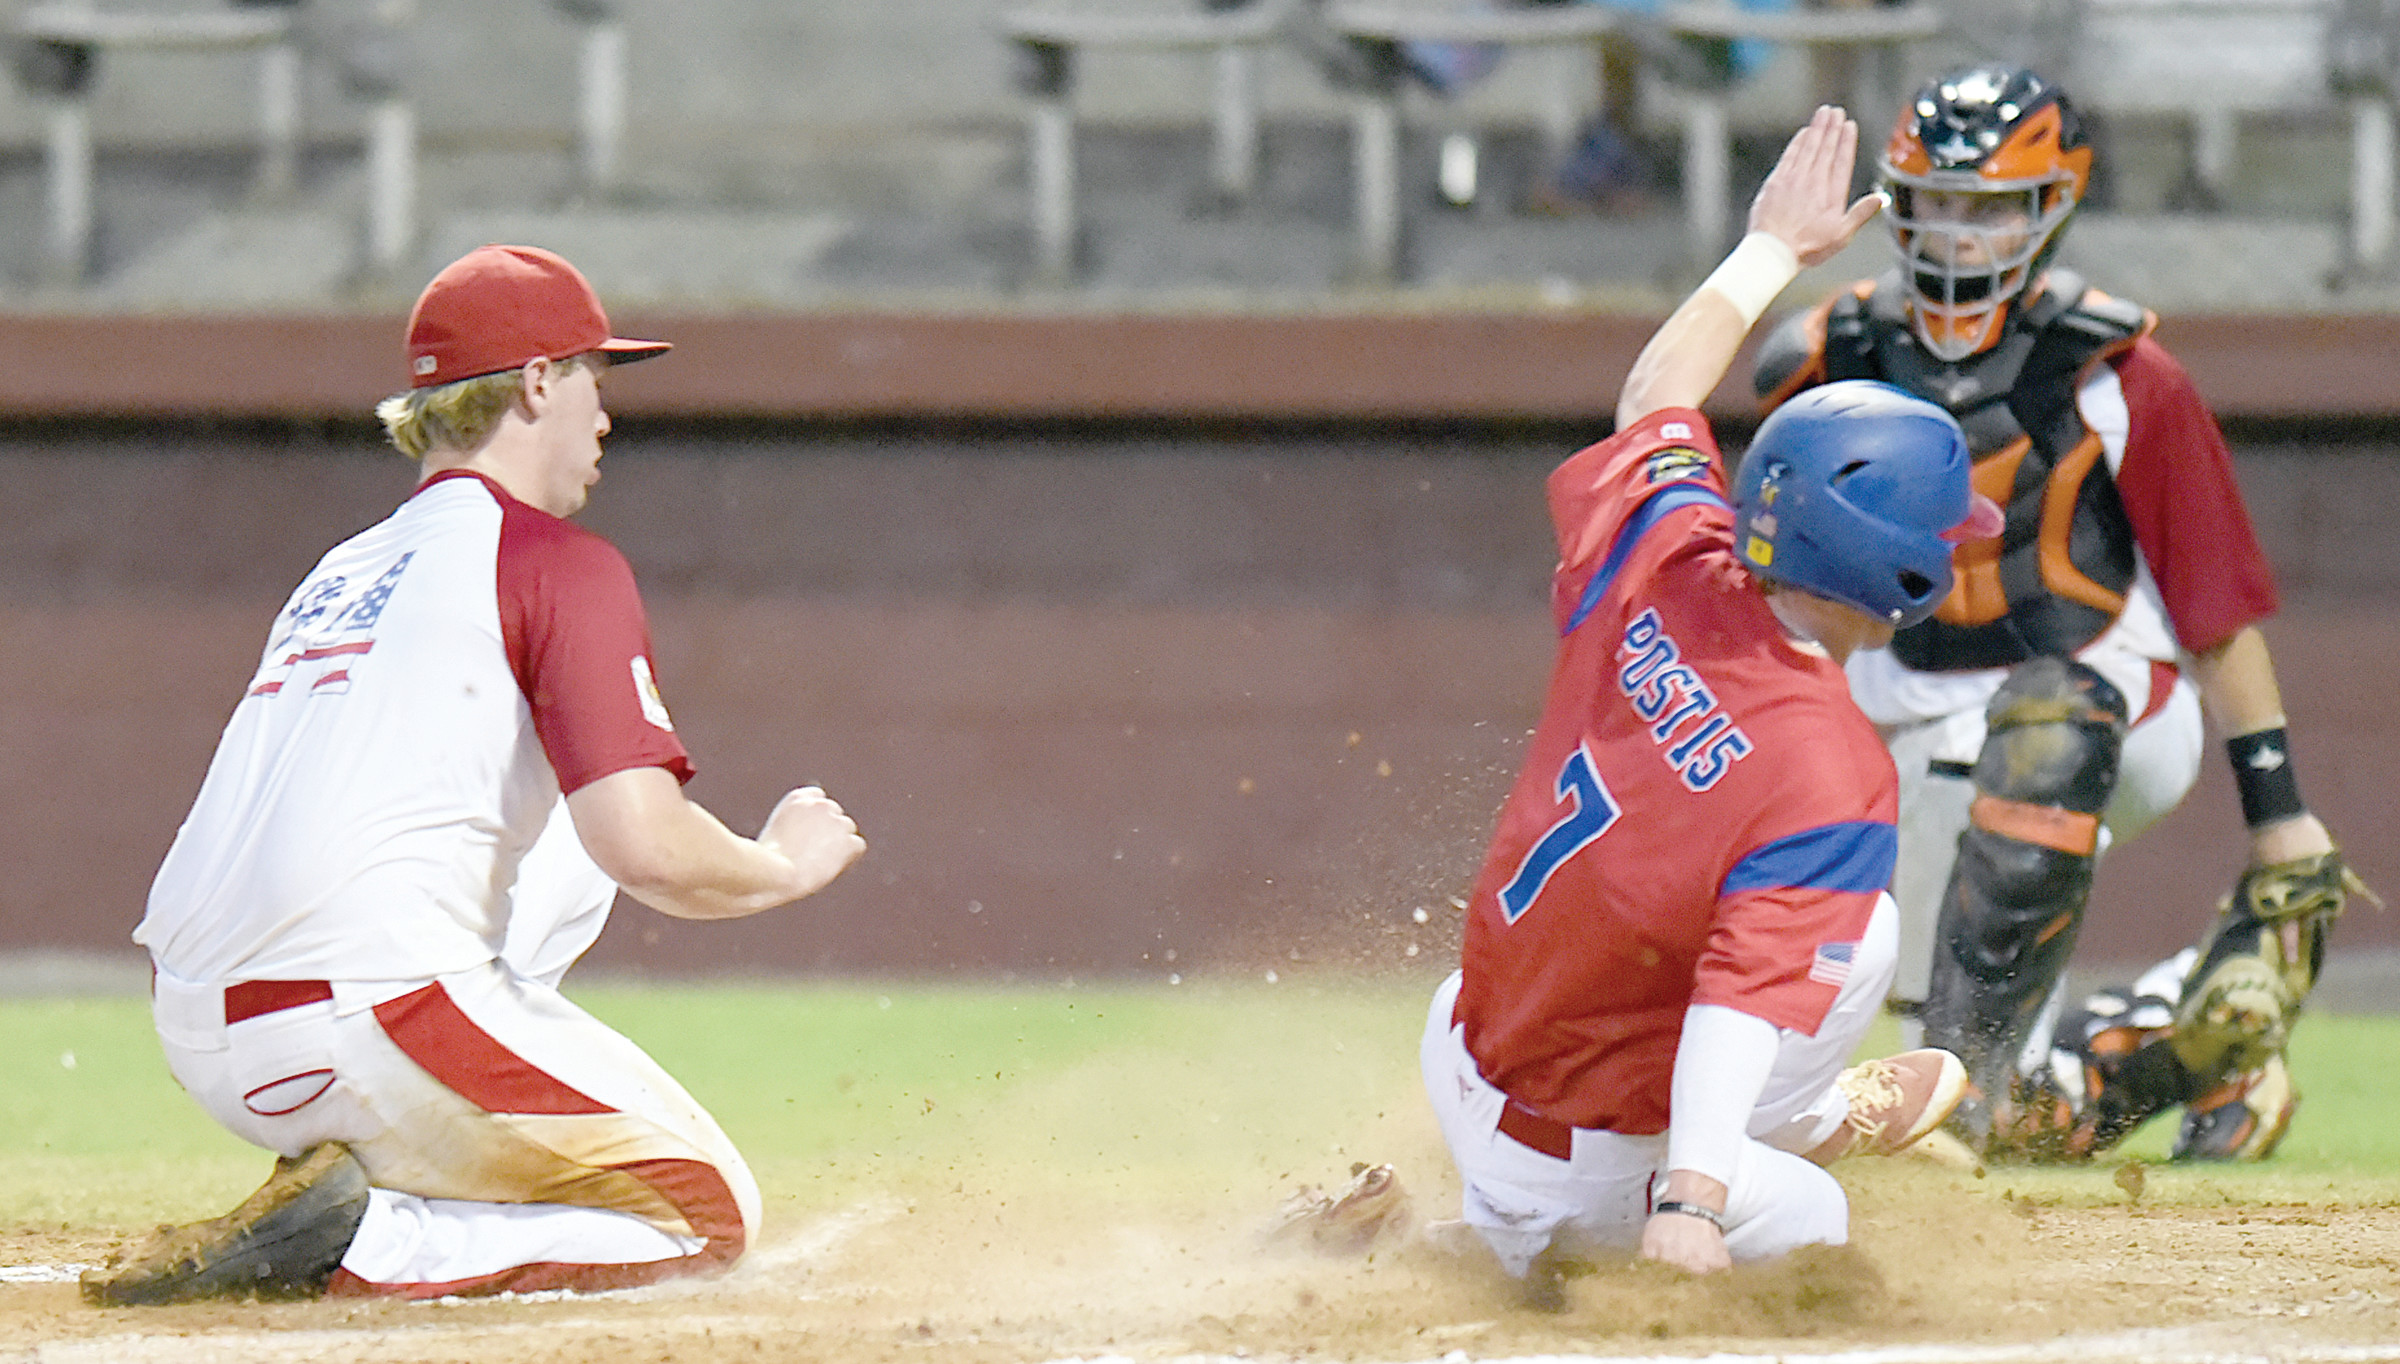 Sumter second baseman Ryan Moore (7) scores a run on a wild pitch as Wilmington, N.C., pitcher Mike Gang, left, is late getting to the plate during the P-15's 12-2 victory on Saturday in the North/South Tournament of Champions at Riley Park.